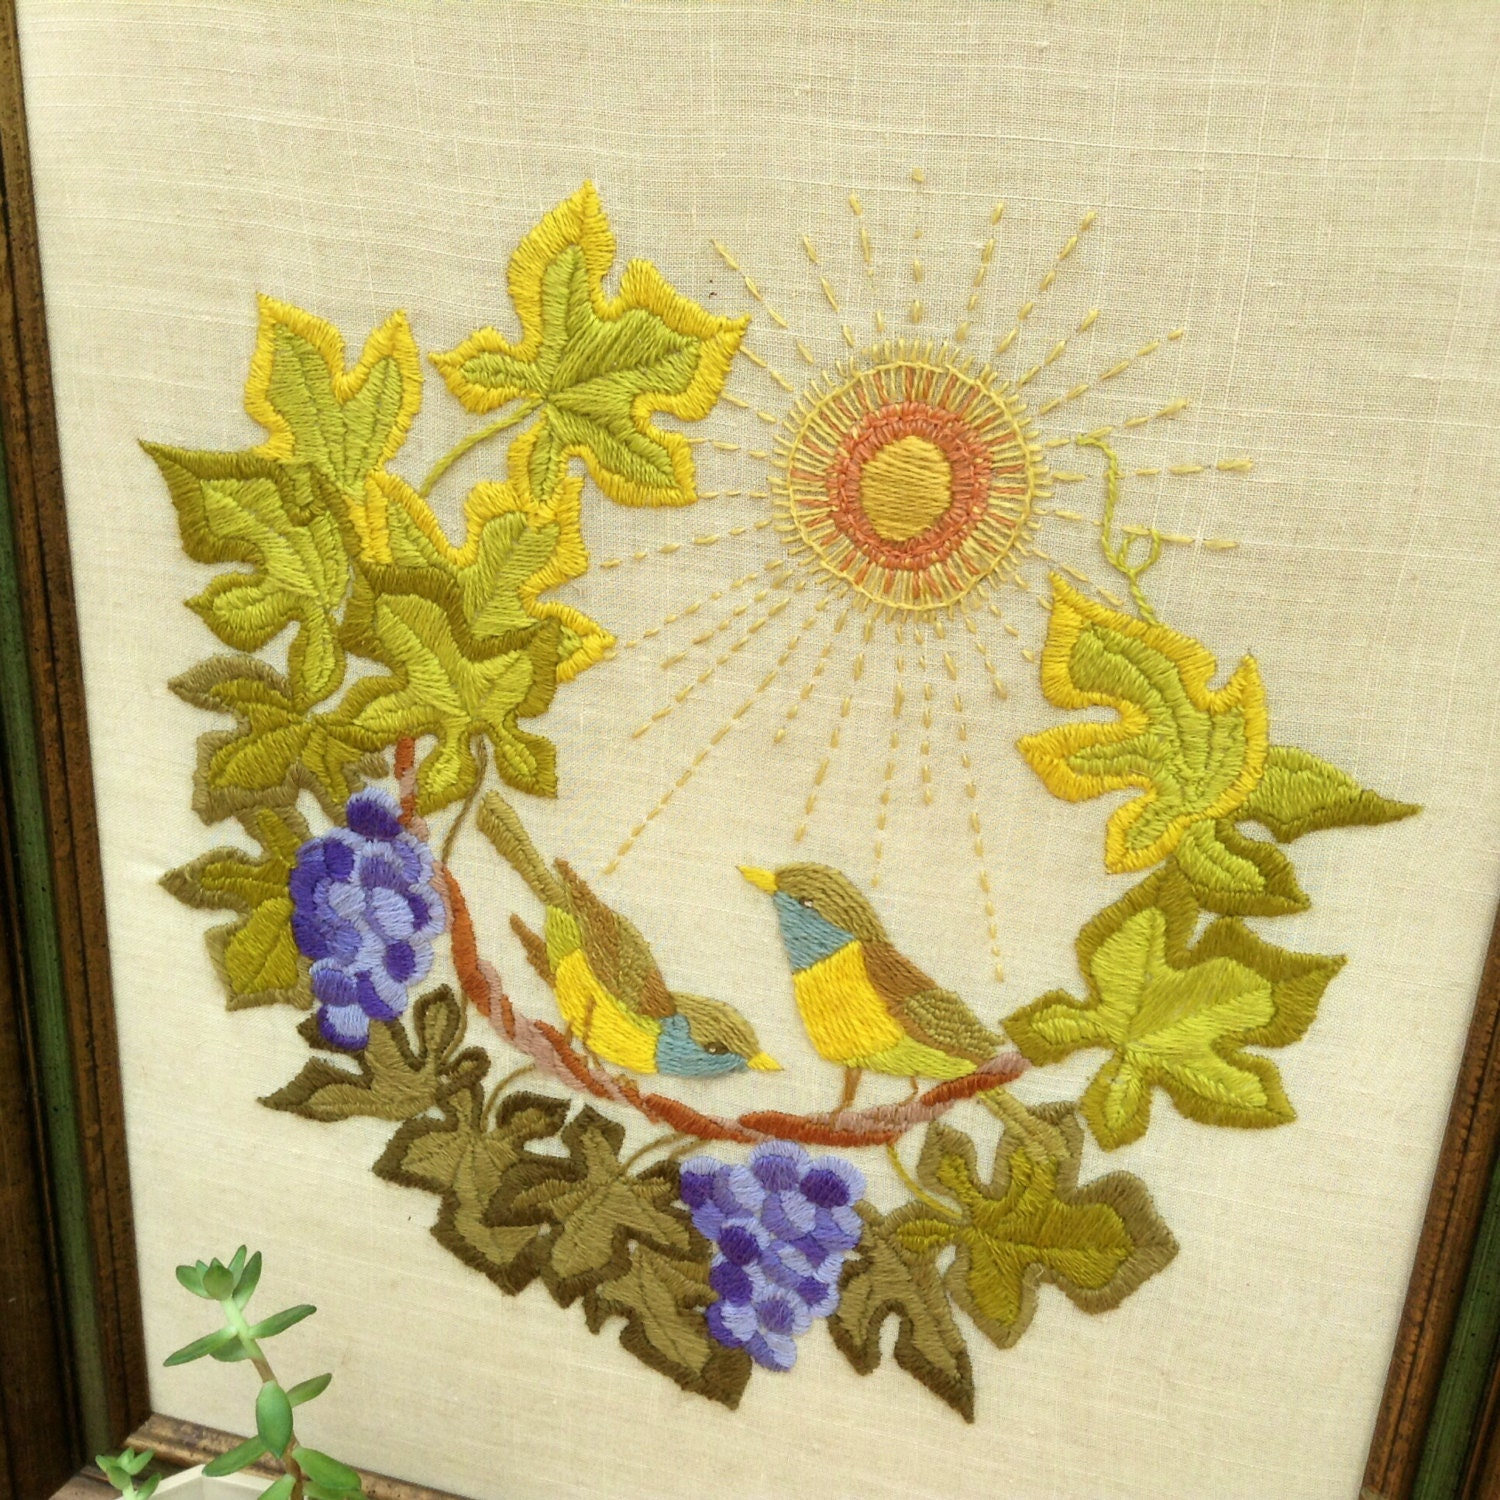 Natured Inspired Wood Framed Vintage Stitched Embroidered Wall ...